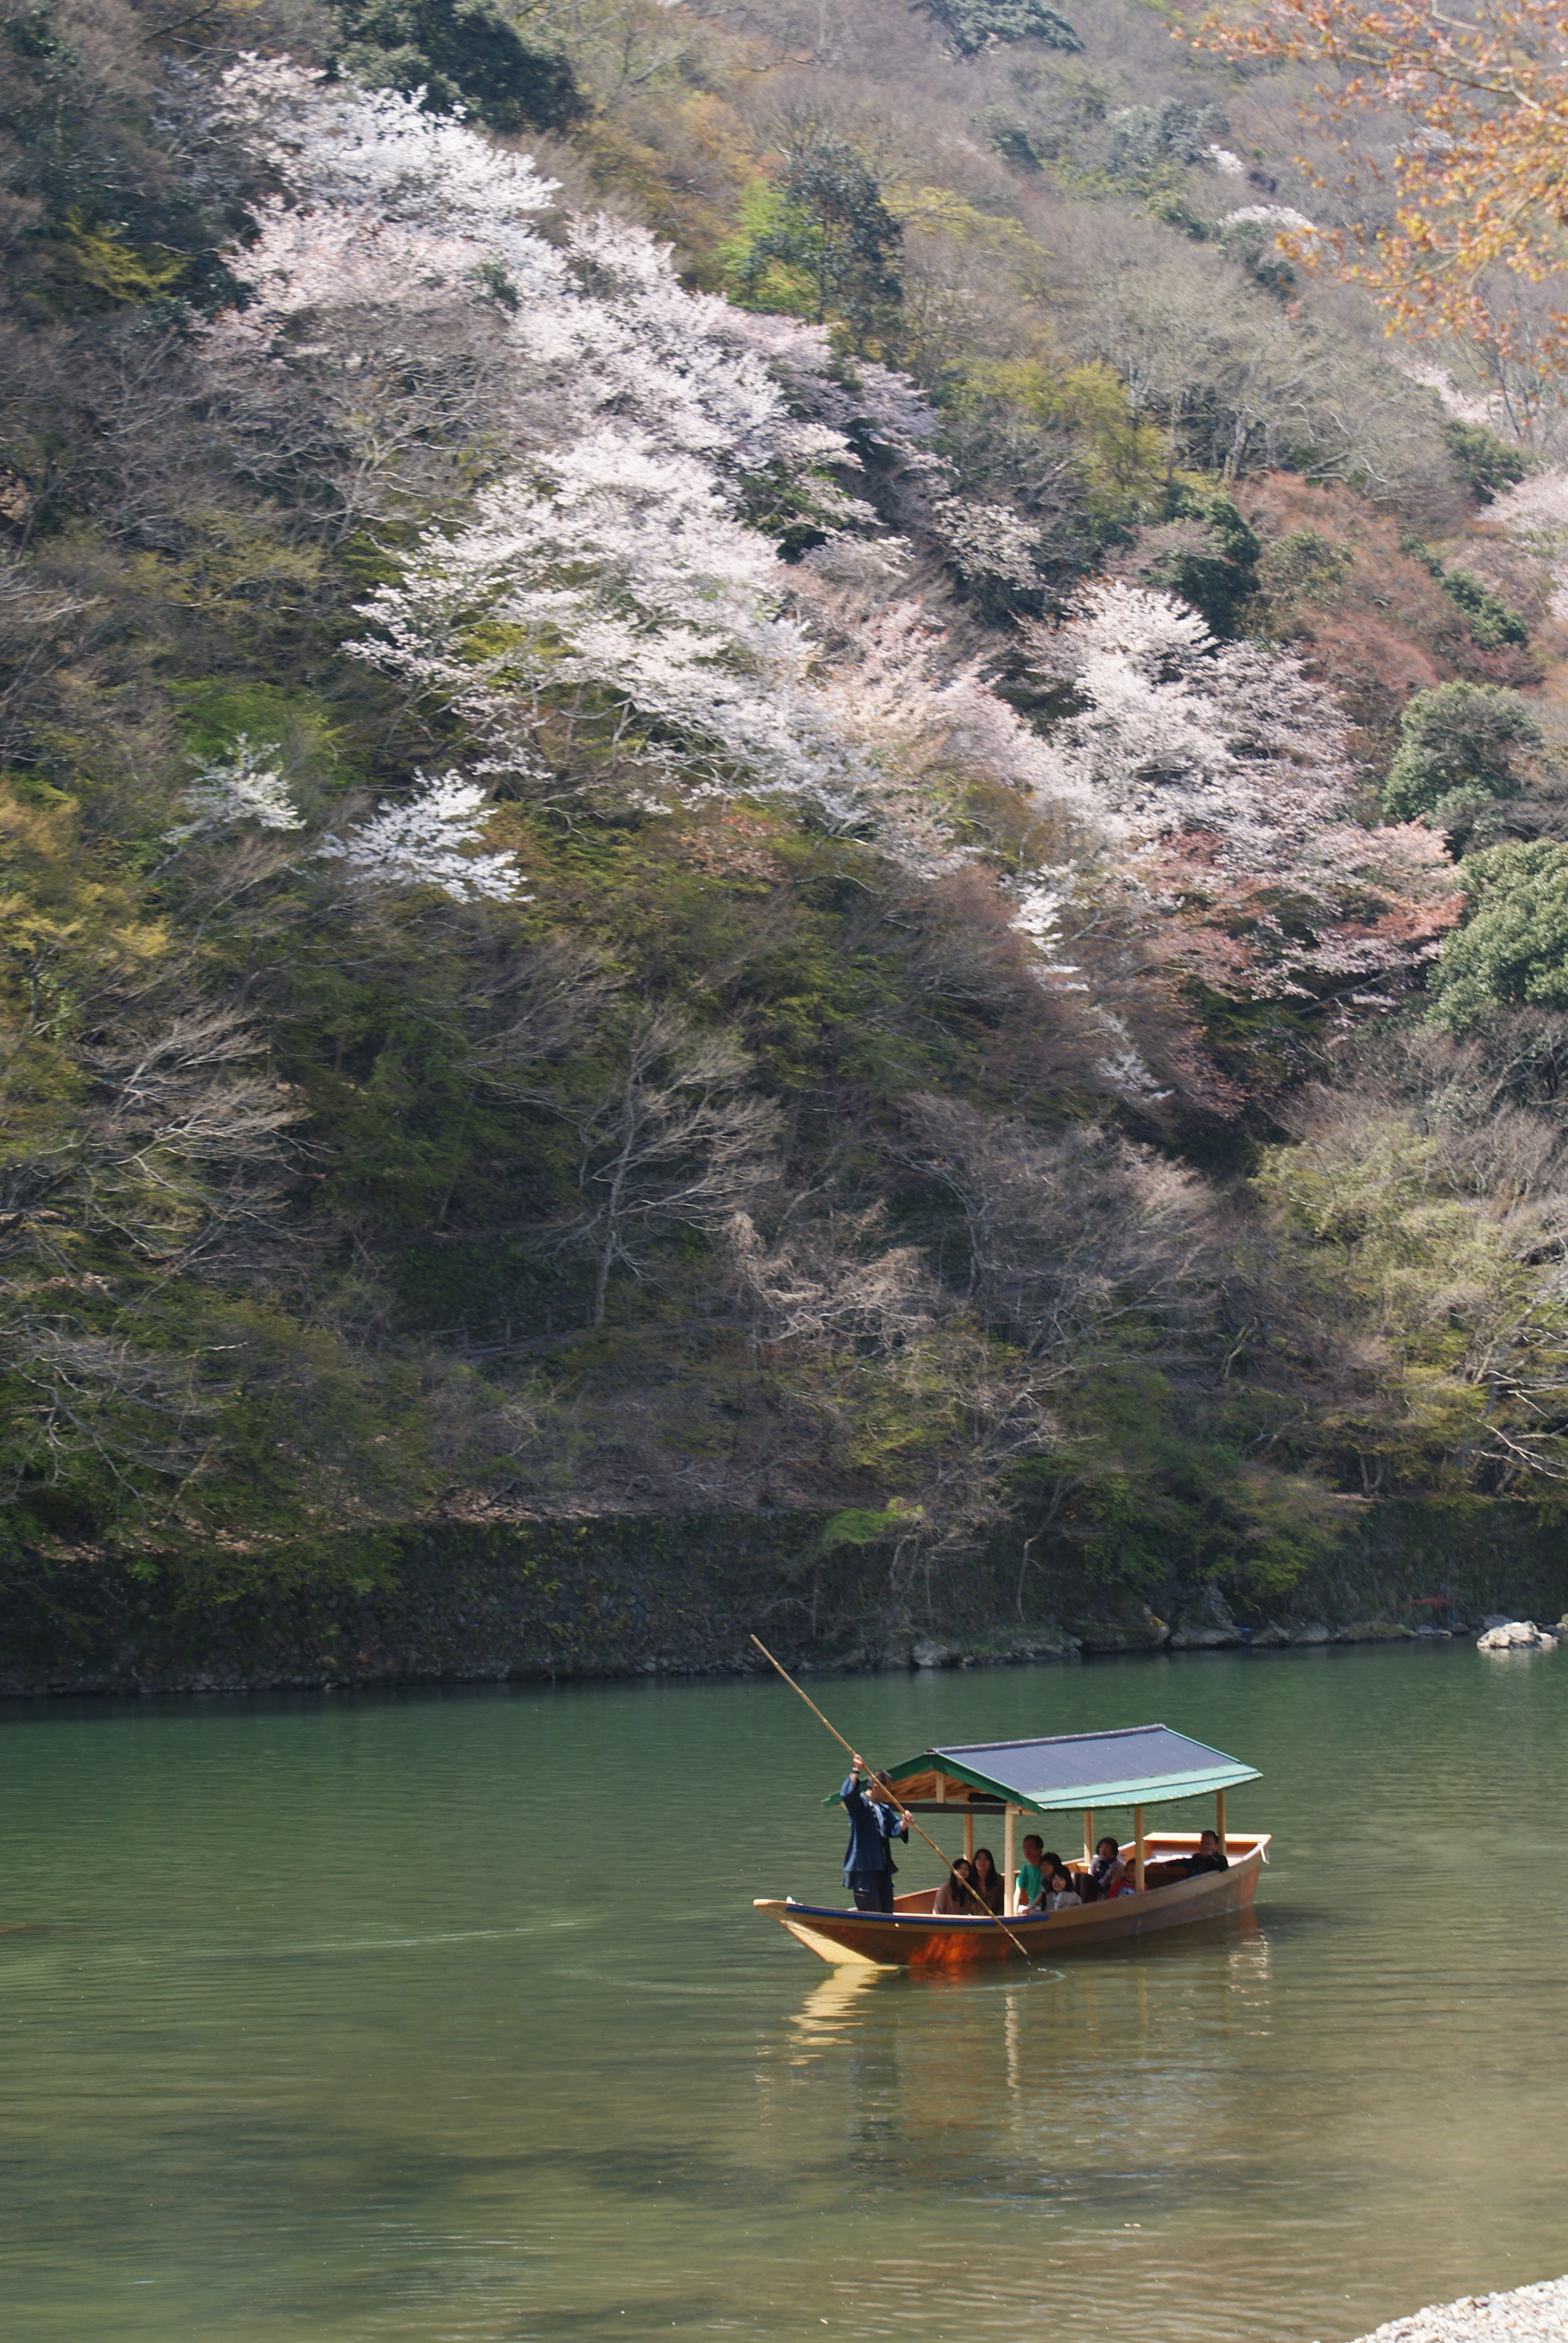 Apart from taking the 100-minute Hozugawa cruise, visitors can also explore the area just upstream of Togetsu-kyo, an iconic bridge in the Arashiyama area, by hiring a boat.